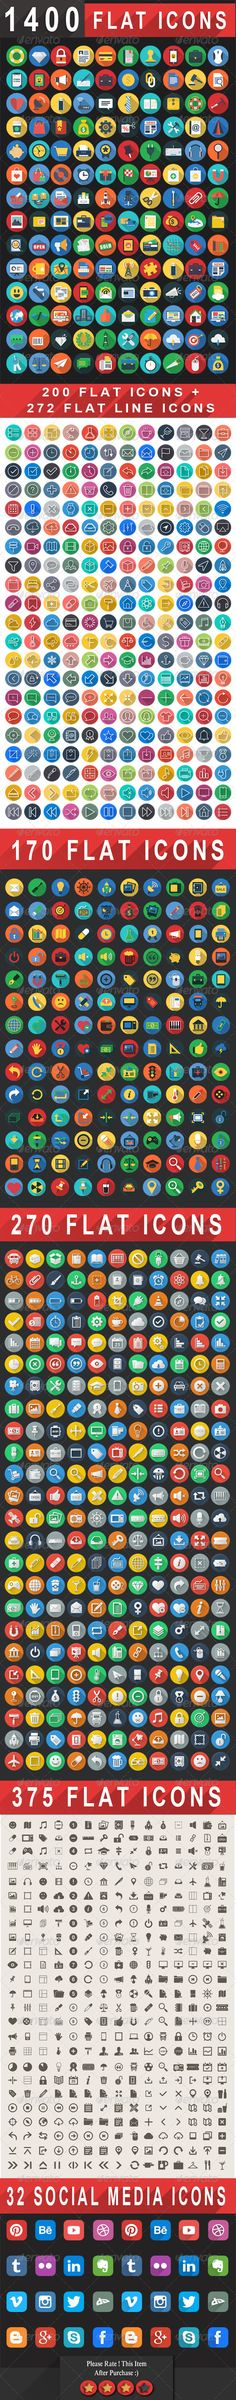 Icon - GraphicRiver 1400& Flat Icons Colorful Flat Icons Set 7830824 » Dondrup.com  Mobile marketing, app, app development, business, collaborations, colorful, communication, computer, consultancy, cross platform, development, flat icons, glyphs, graphics, icons, idea, interface, internet, line, long shadow, mac, media, modern, responsive, seo icons,  Best stock graphics, design templates, vectors, PhotoShop templates, textures & 3D models from creative professional designers.